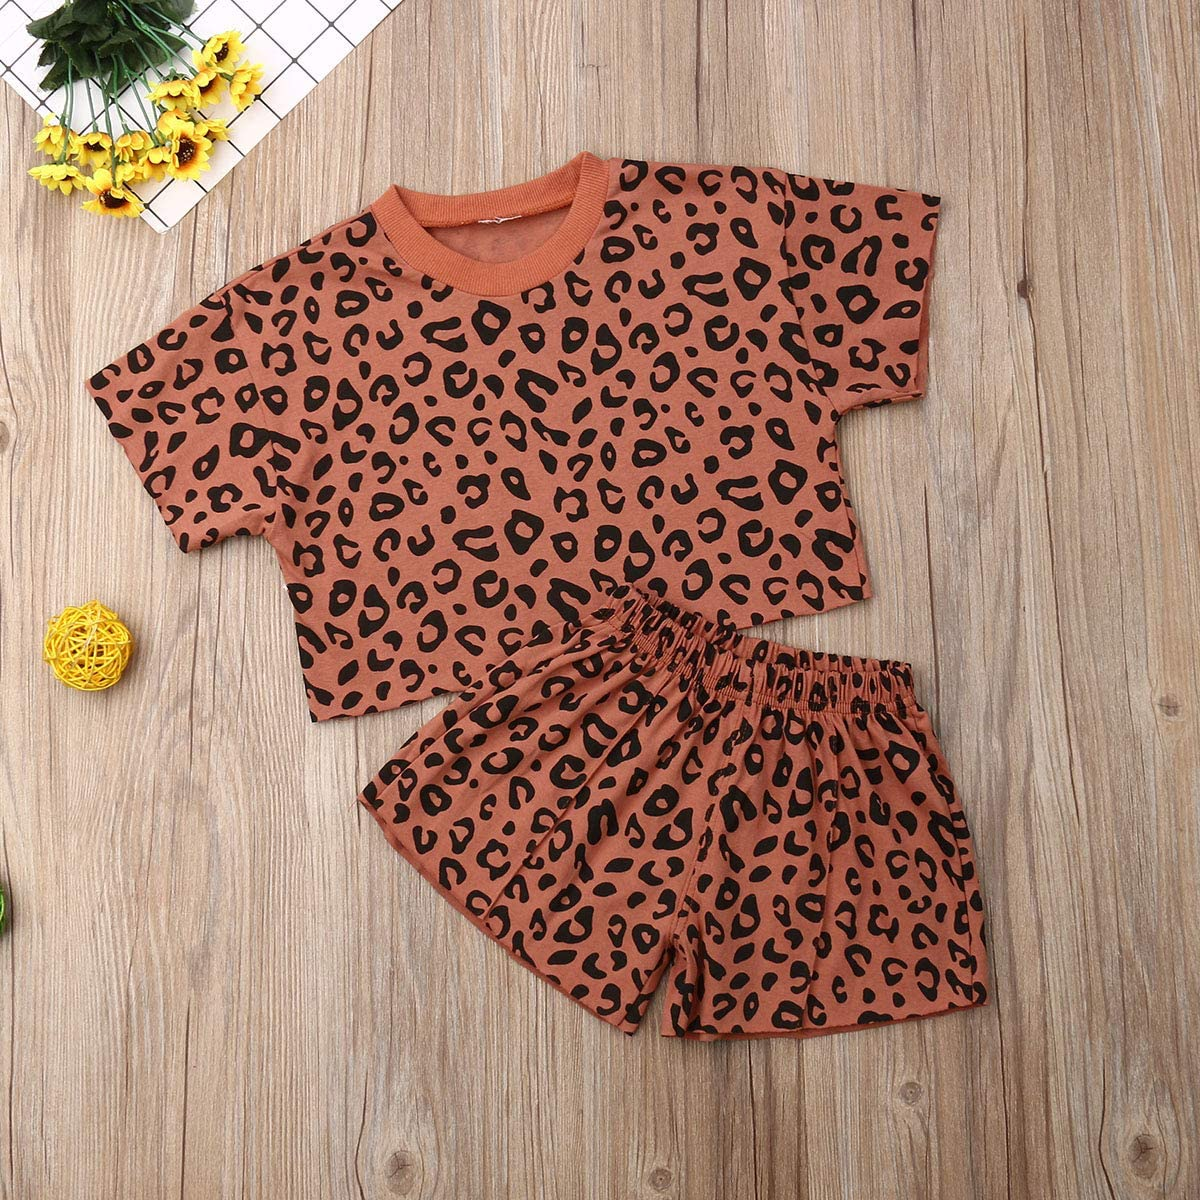 Ilyhaha Toddler Baby Girl Summer Outfits Leopard Print Short Sleeve Crop Top+Shorts Set 2Piece Kid Clothes Set